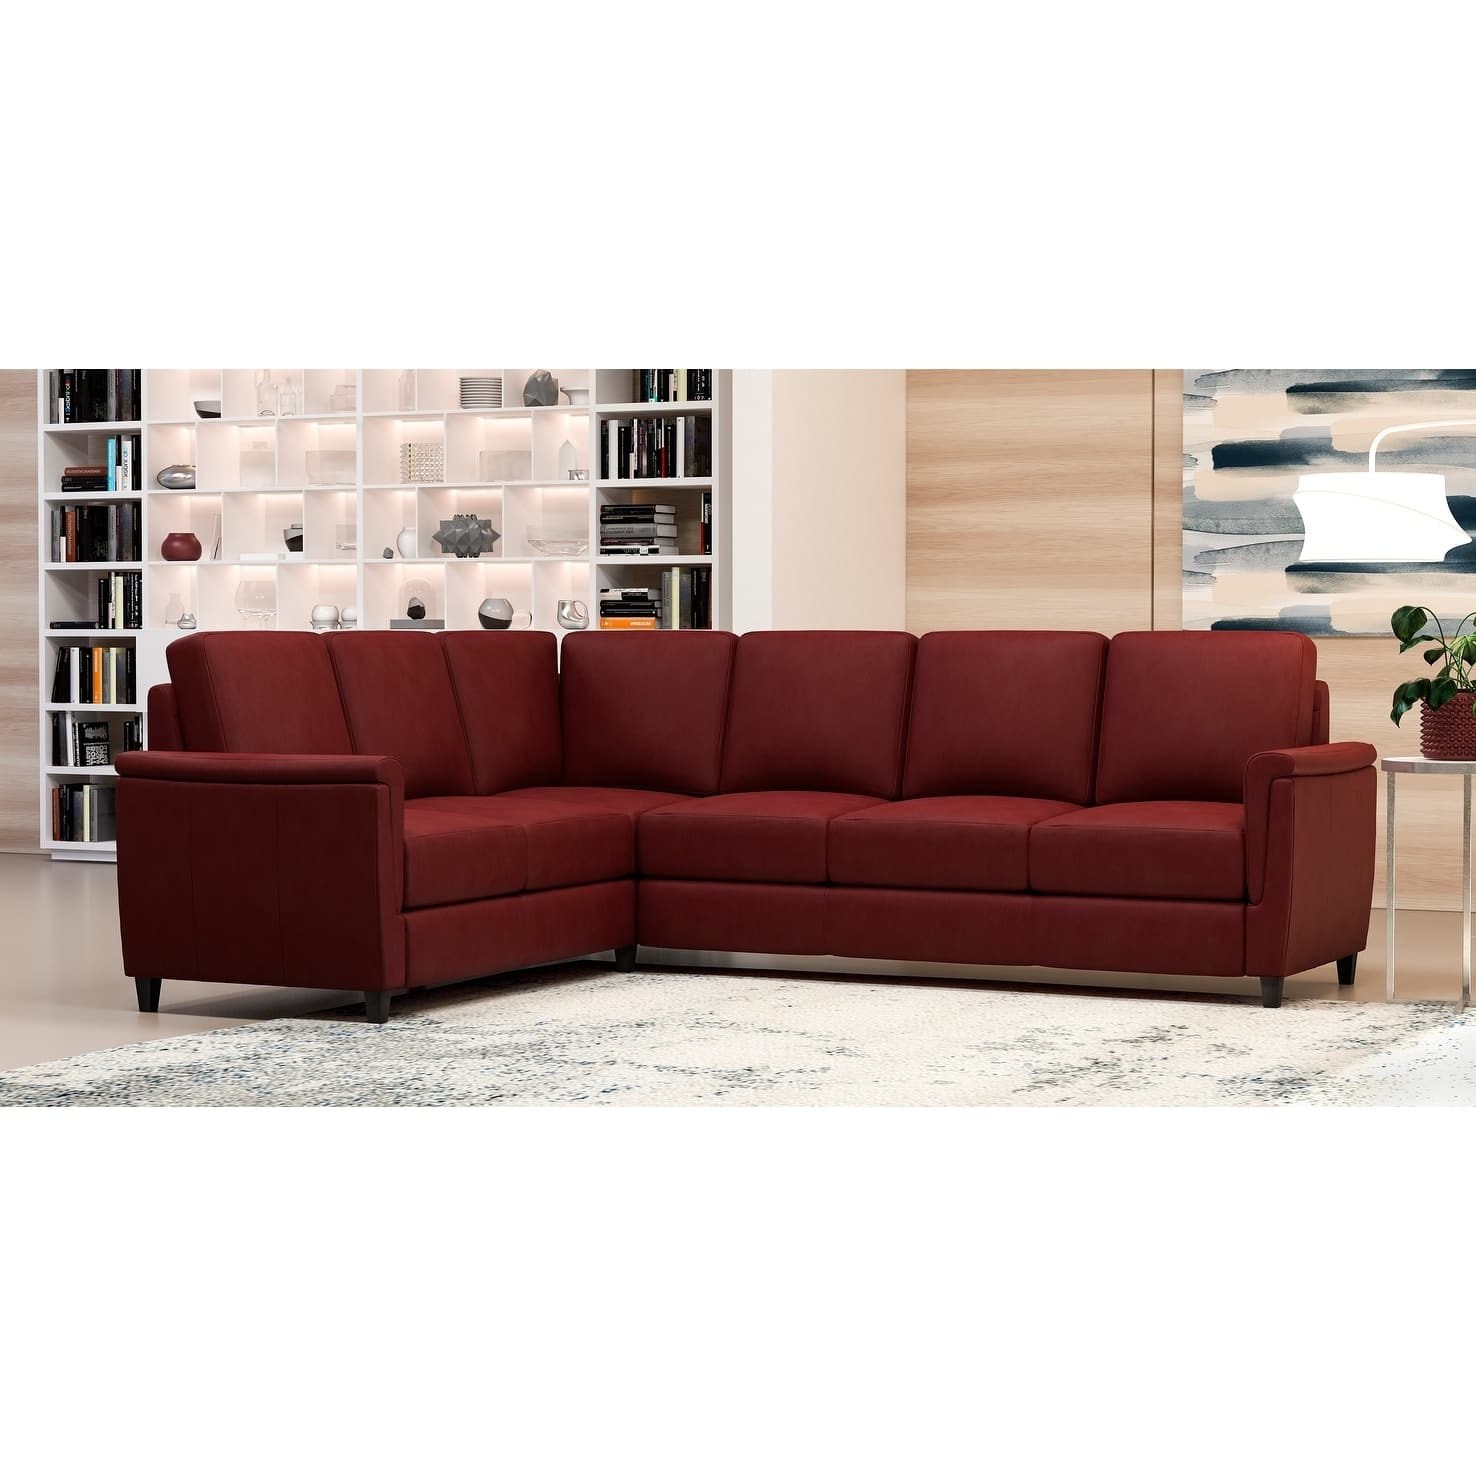 Best Place To Buy Living Room Furniture: Buy Sectional Sofas Online At Overstock